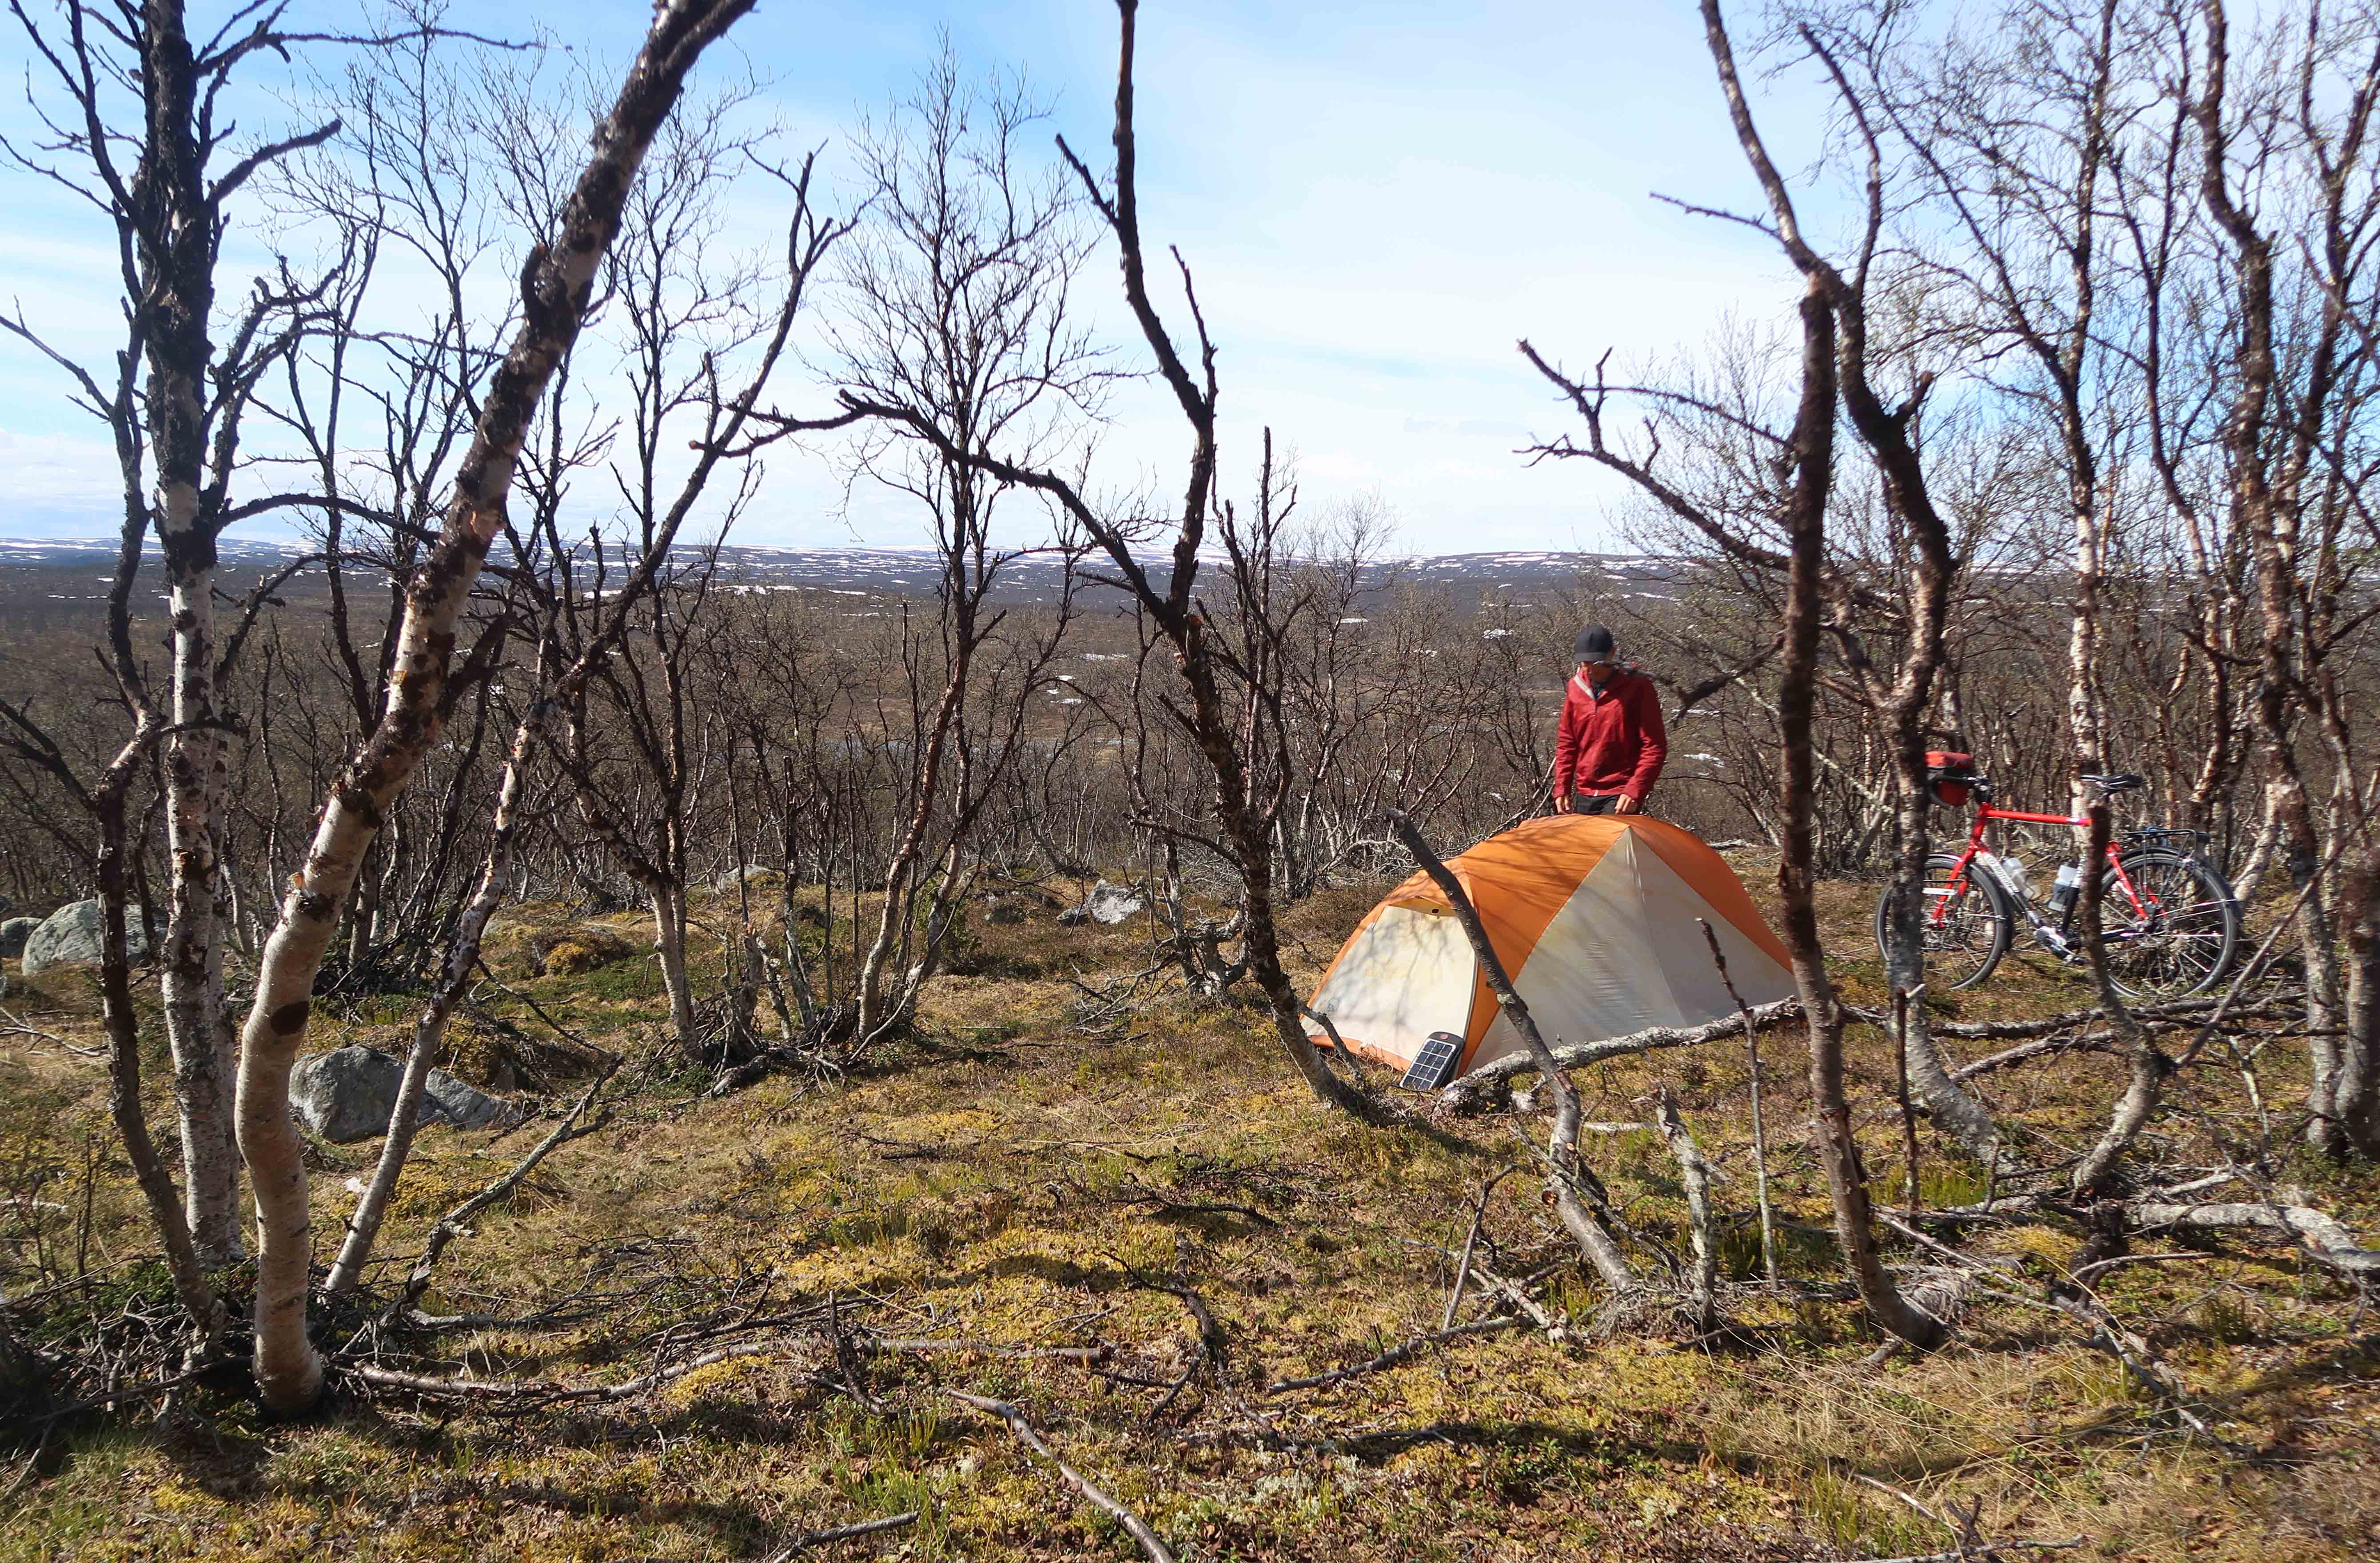 Wild camping in lapland norway - Bicycle Touring Pro